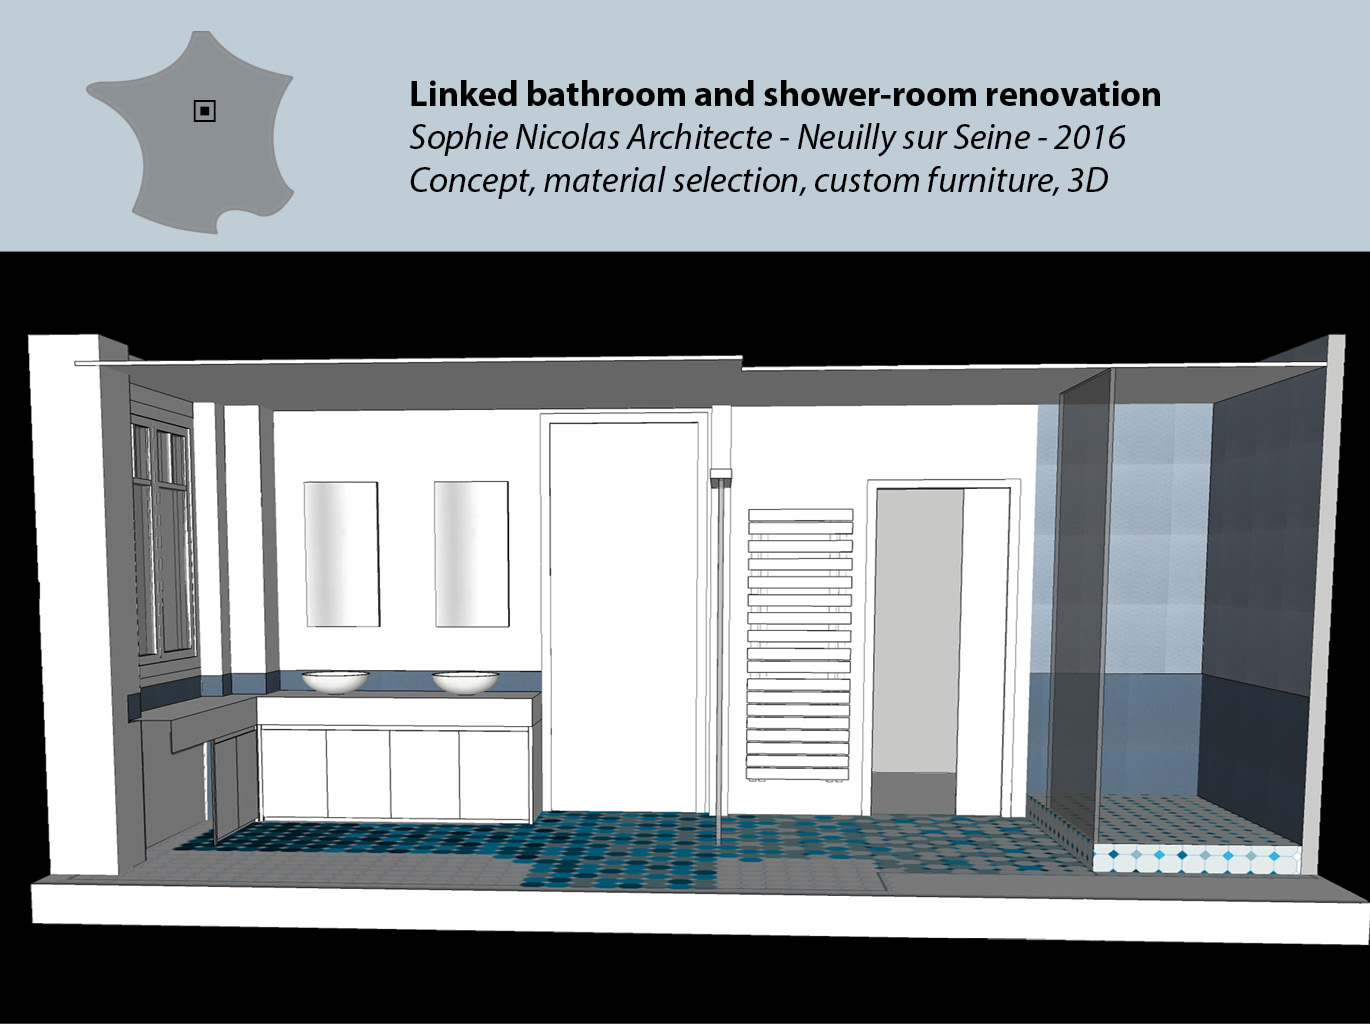 Linked bathroom and shower-room